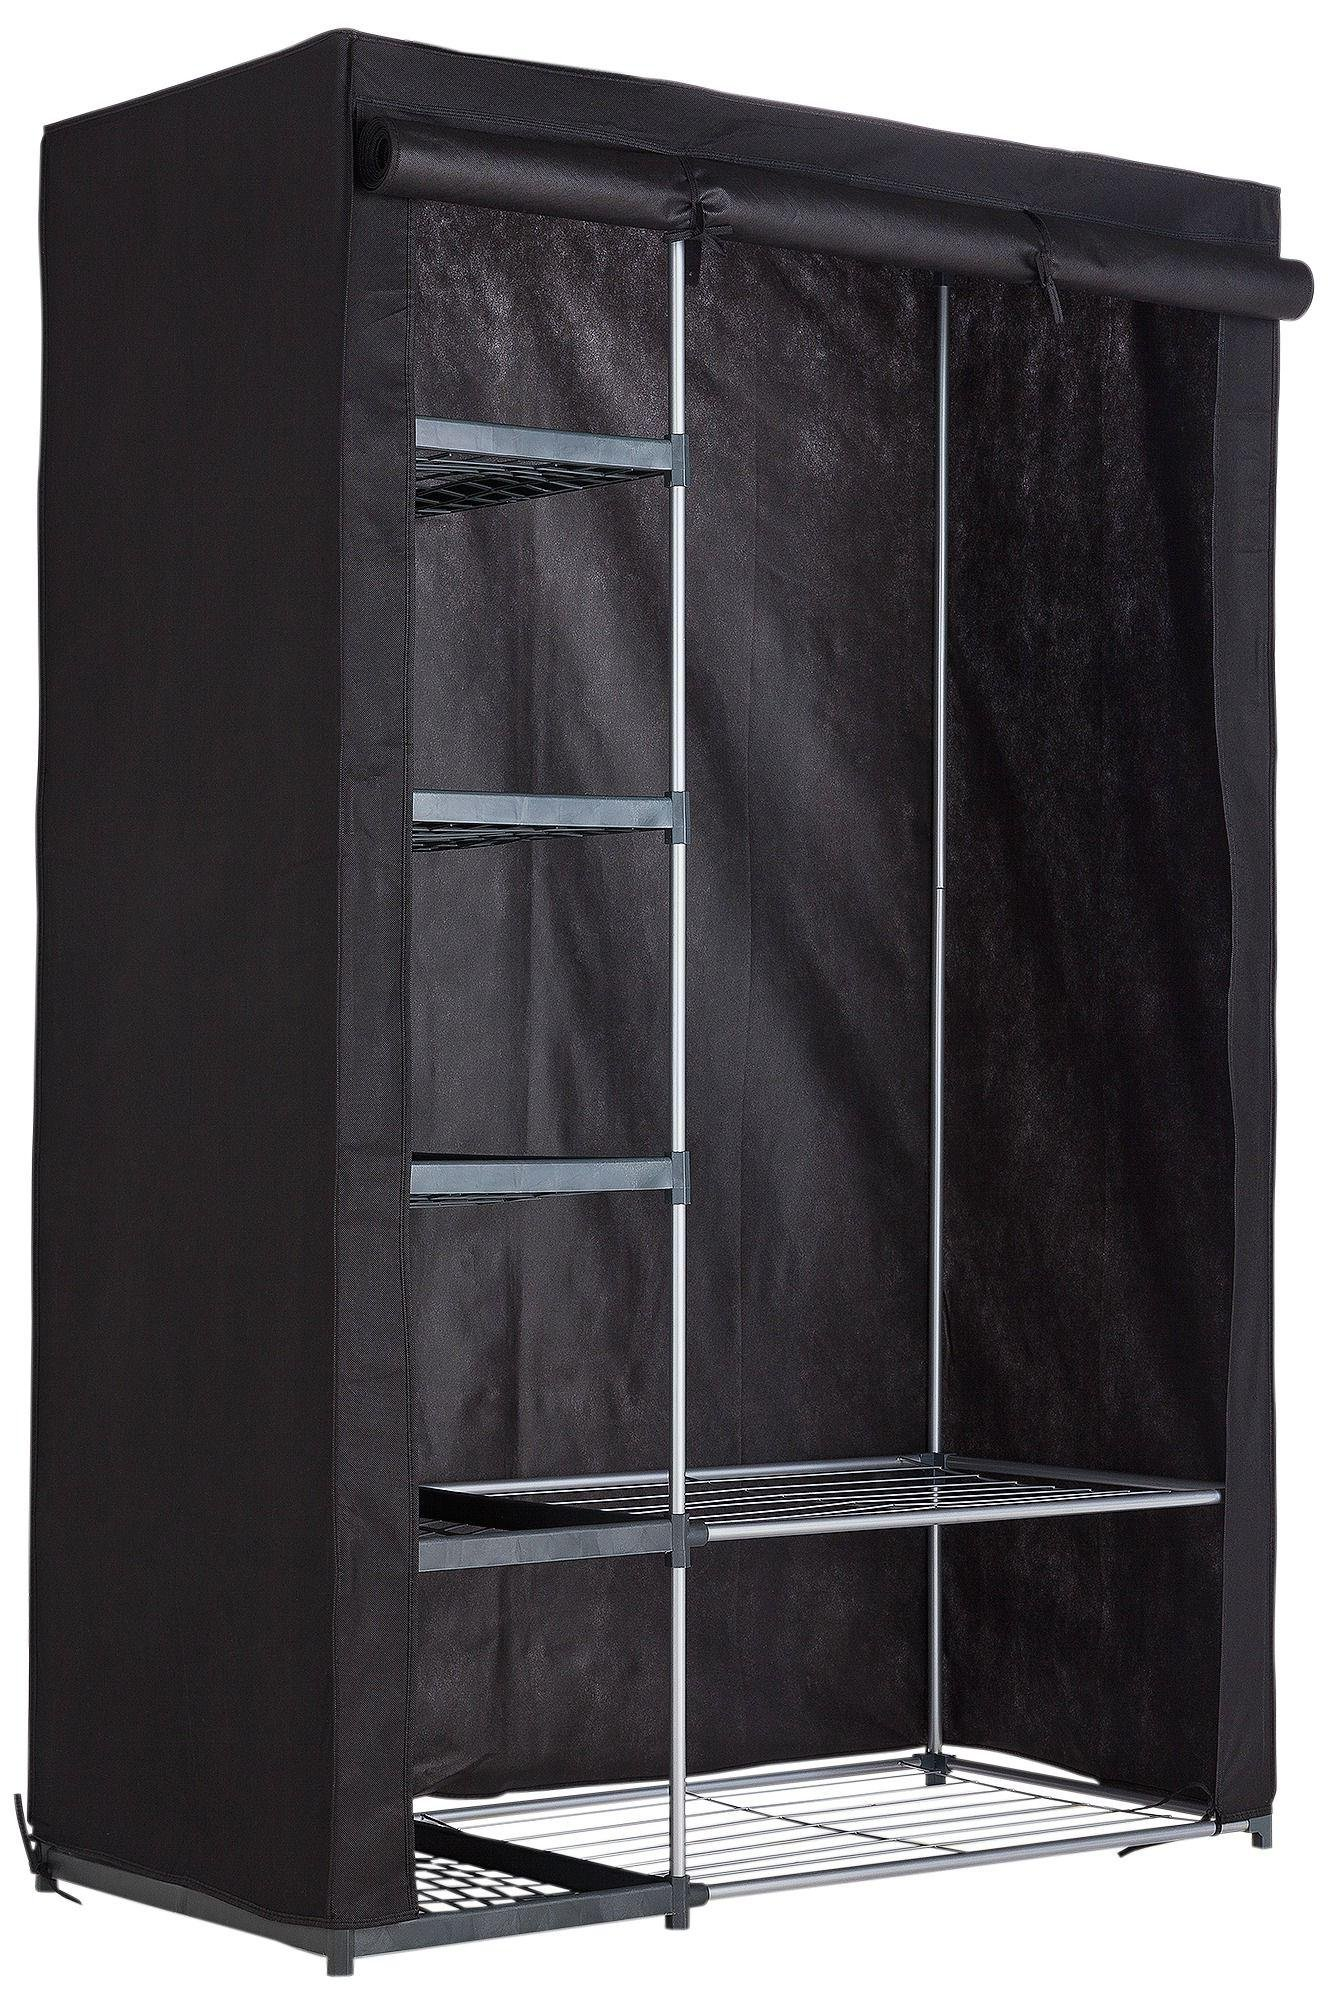 Argos Home Metal and Polycotton Double Wardrobe - Black